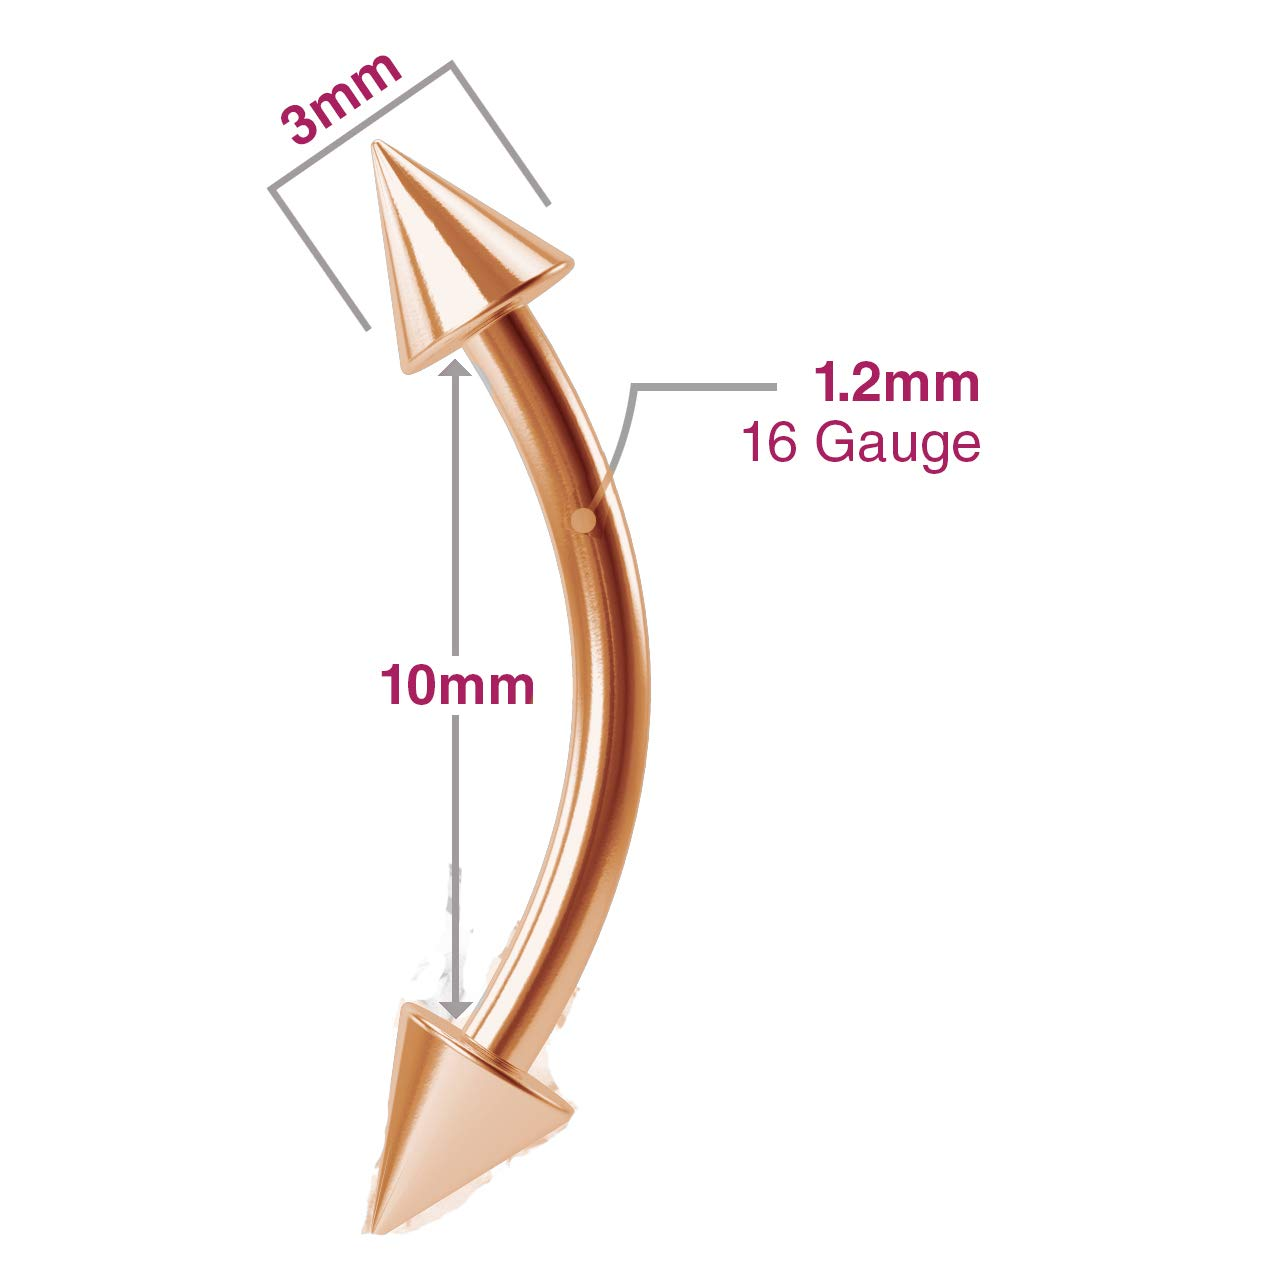 2pc 16g Curved Barbell Barbel Rook J Curve 316LVM Surgical Steel Jewelry Rose Gold Earrings Piercing Jewelry Gauge Rook Eyebrow Spike 10mm